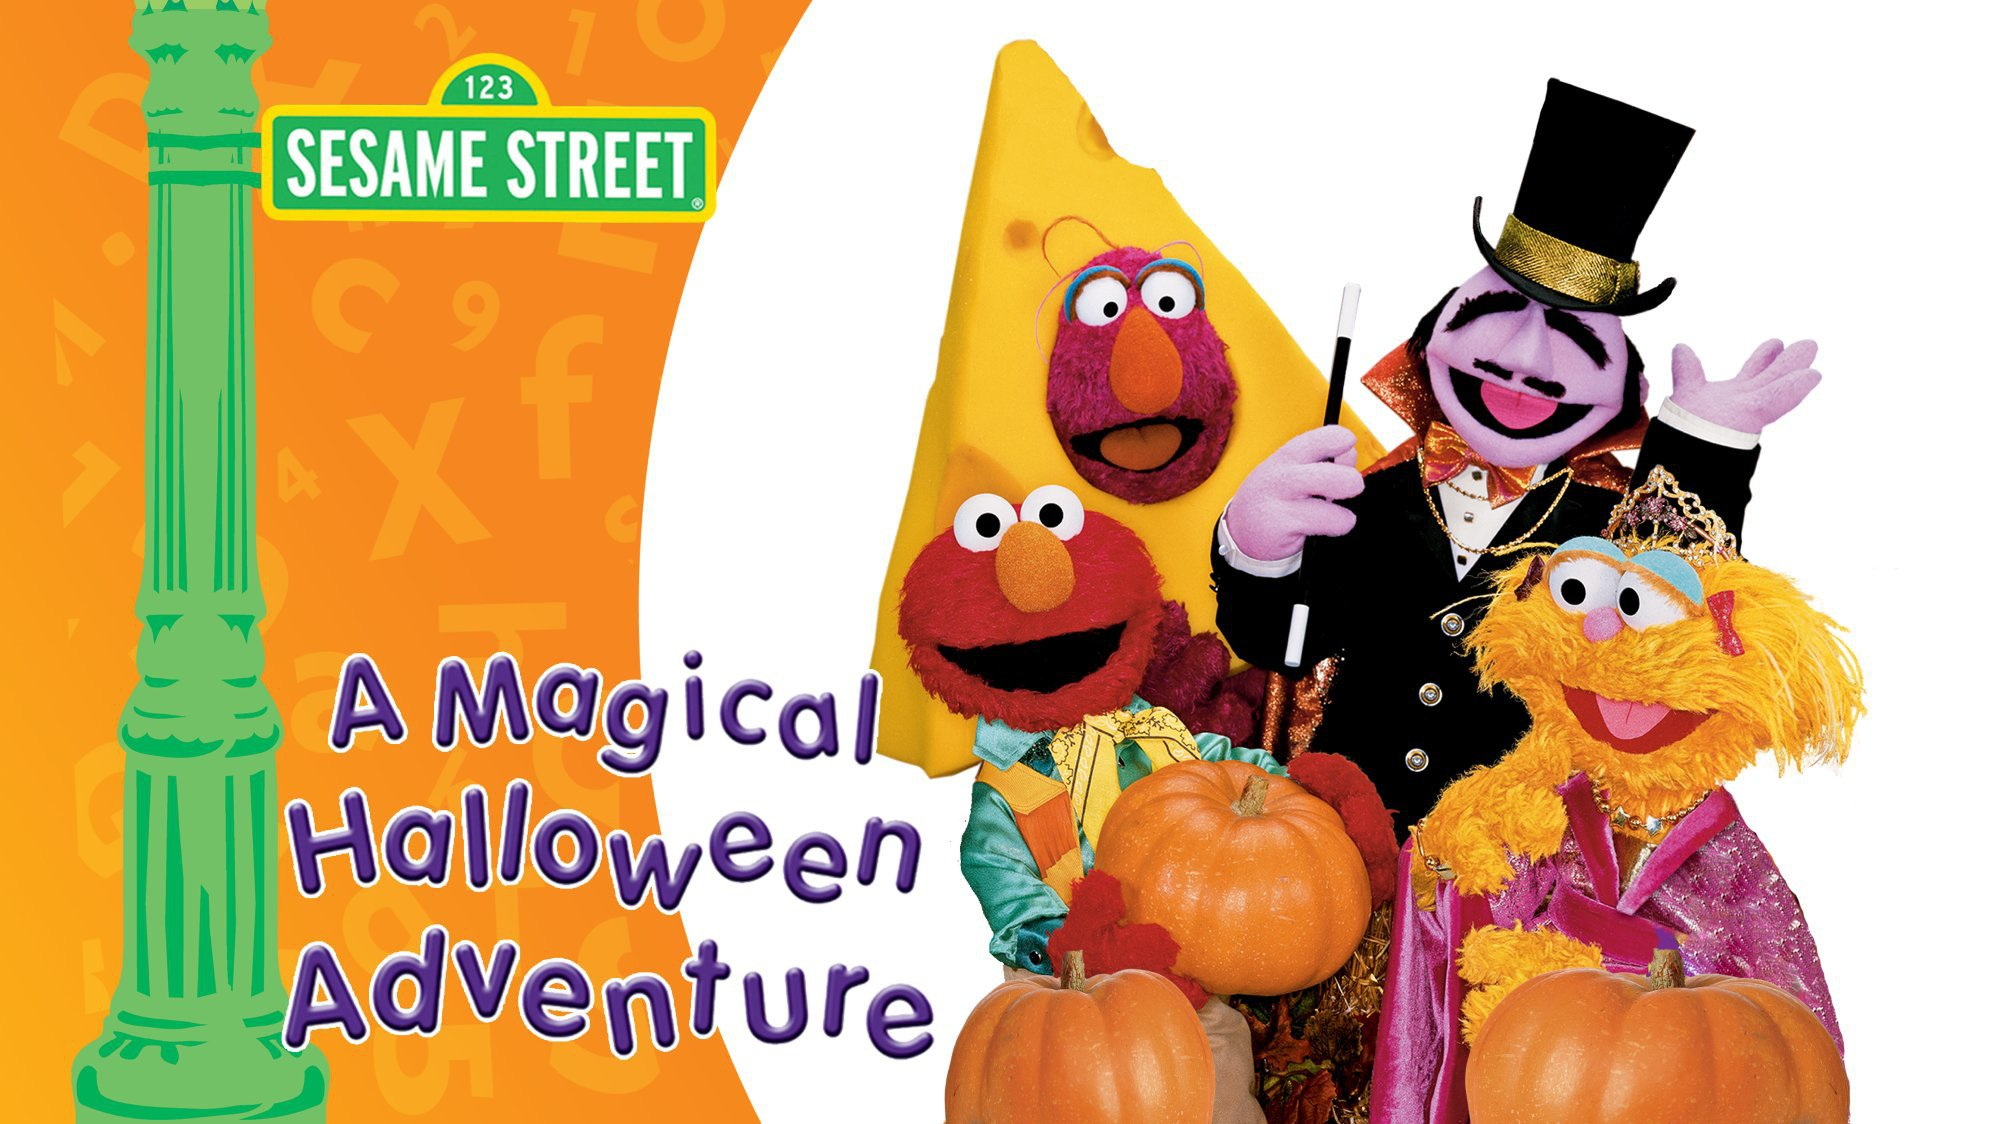 Amazon.com: Sesame Street: A Magical Halloween Adventure, A: Kevin ...